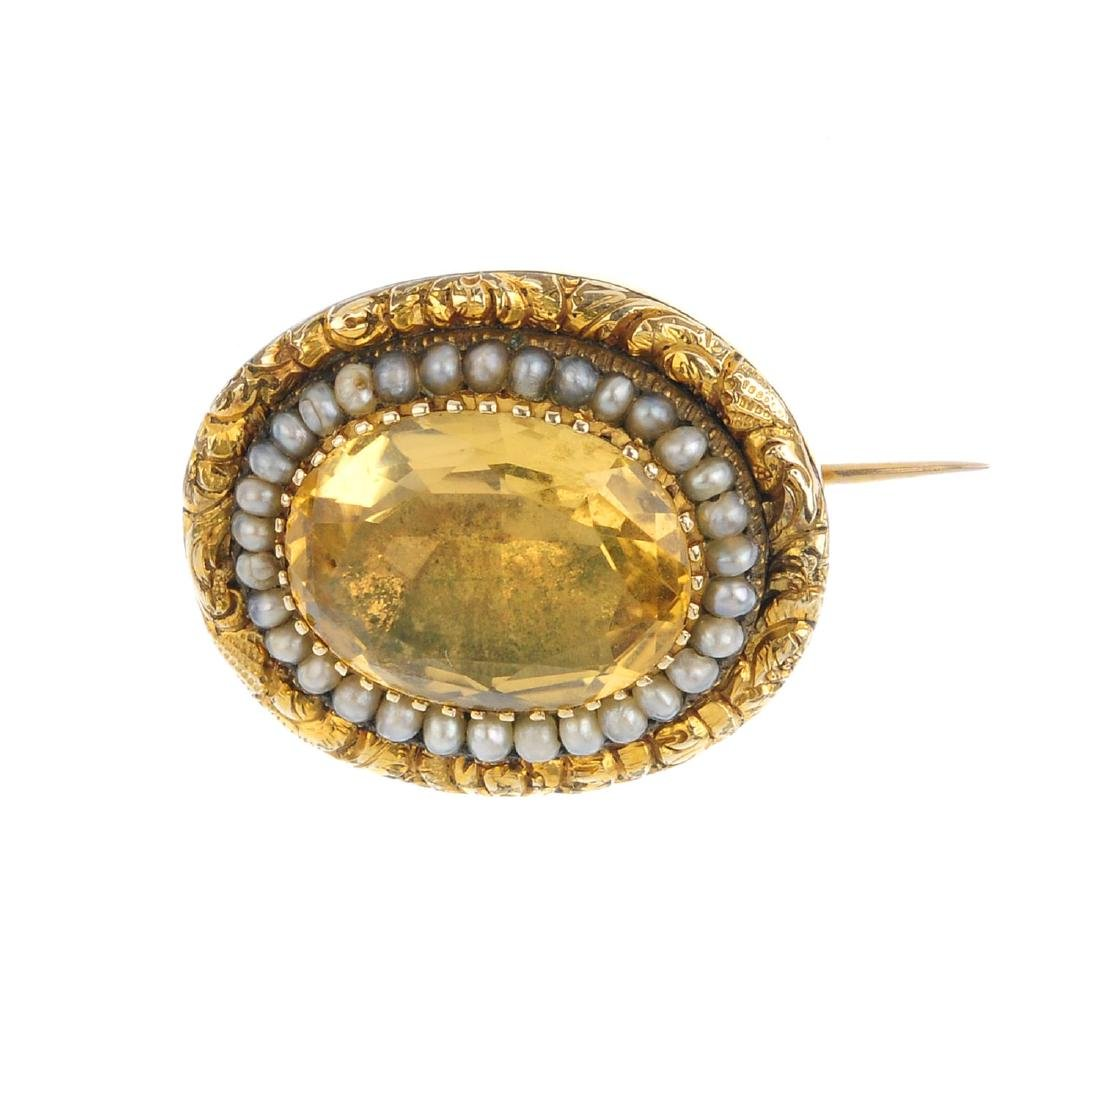 A late Victorian citrine and split pearl brooch. The